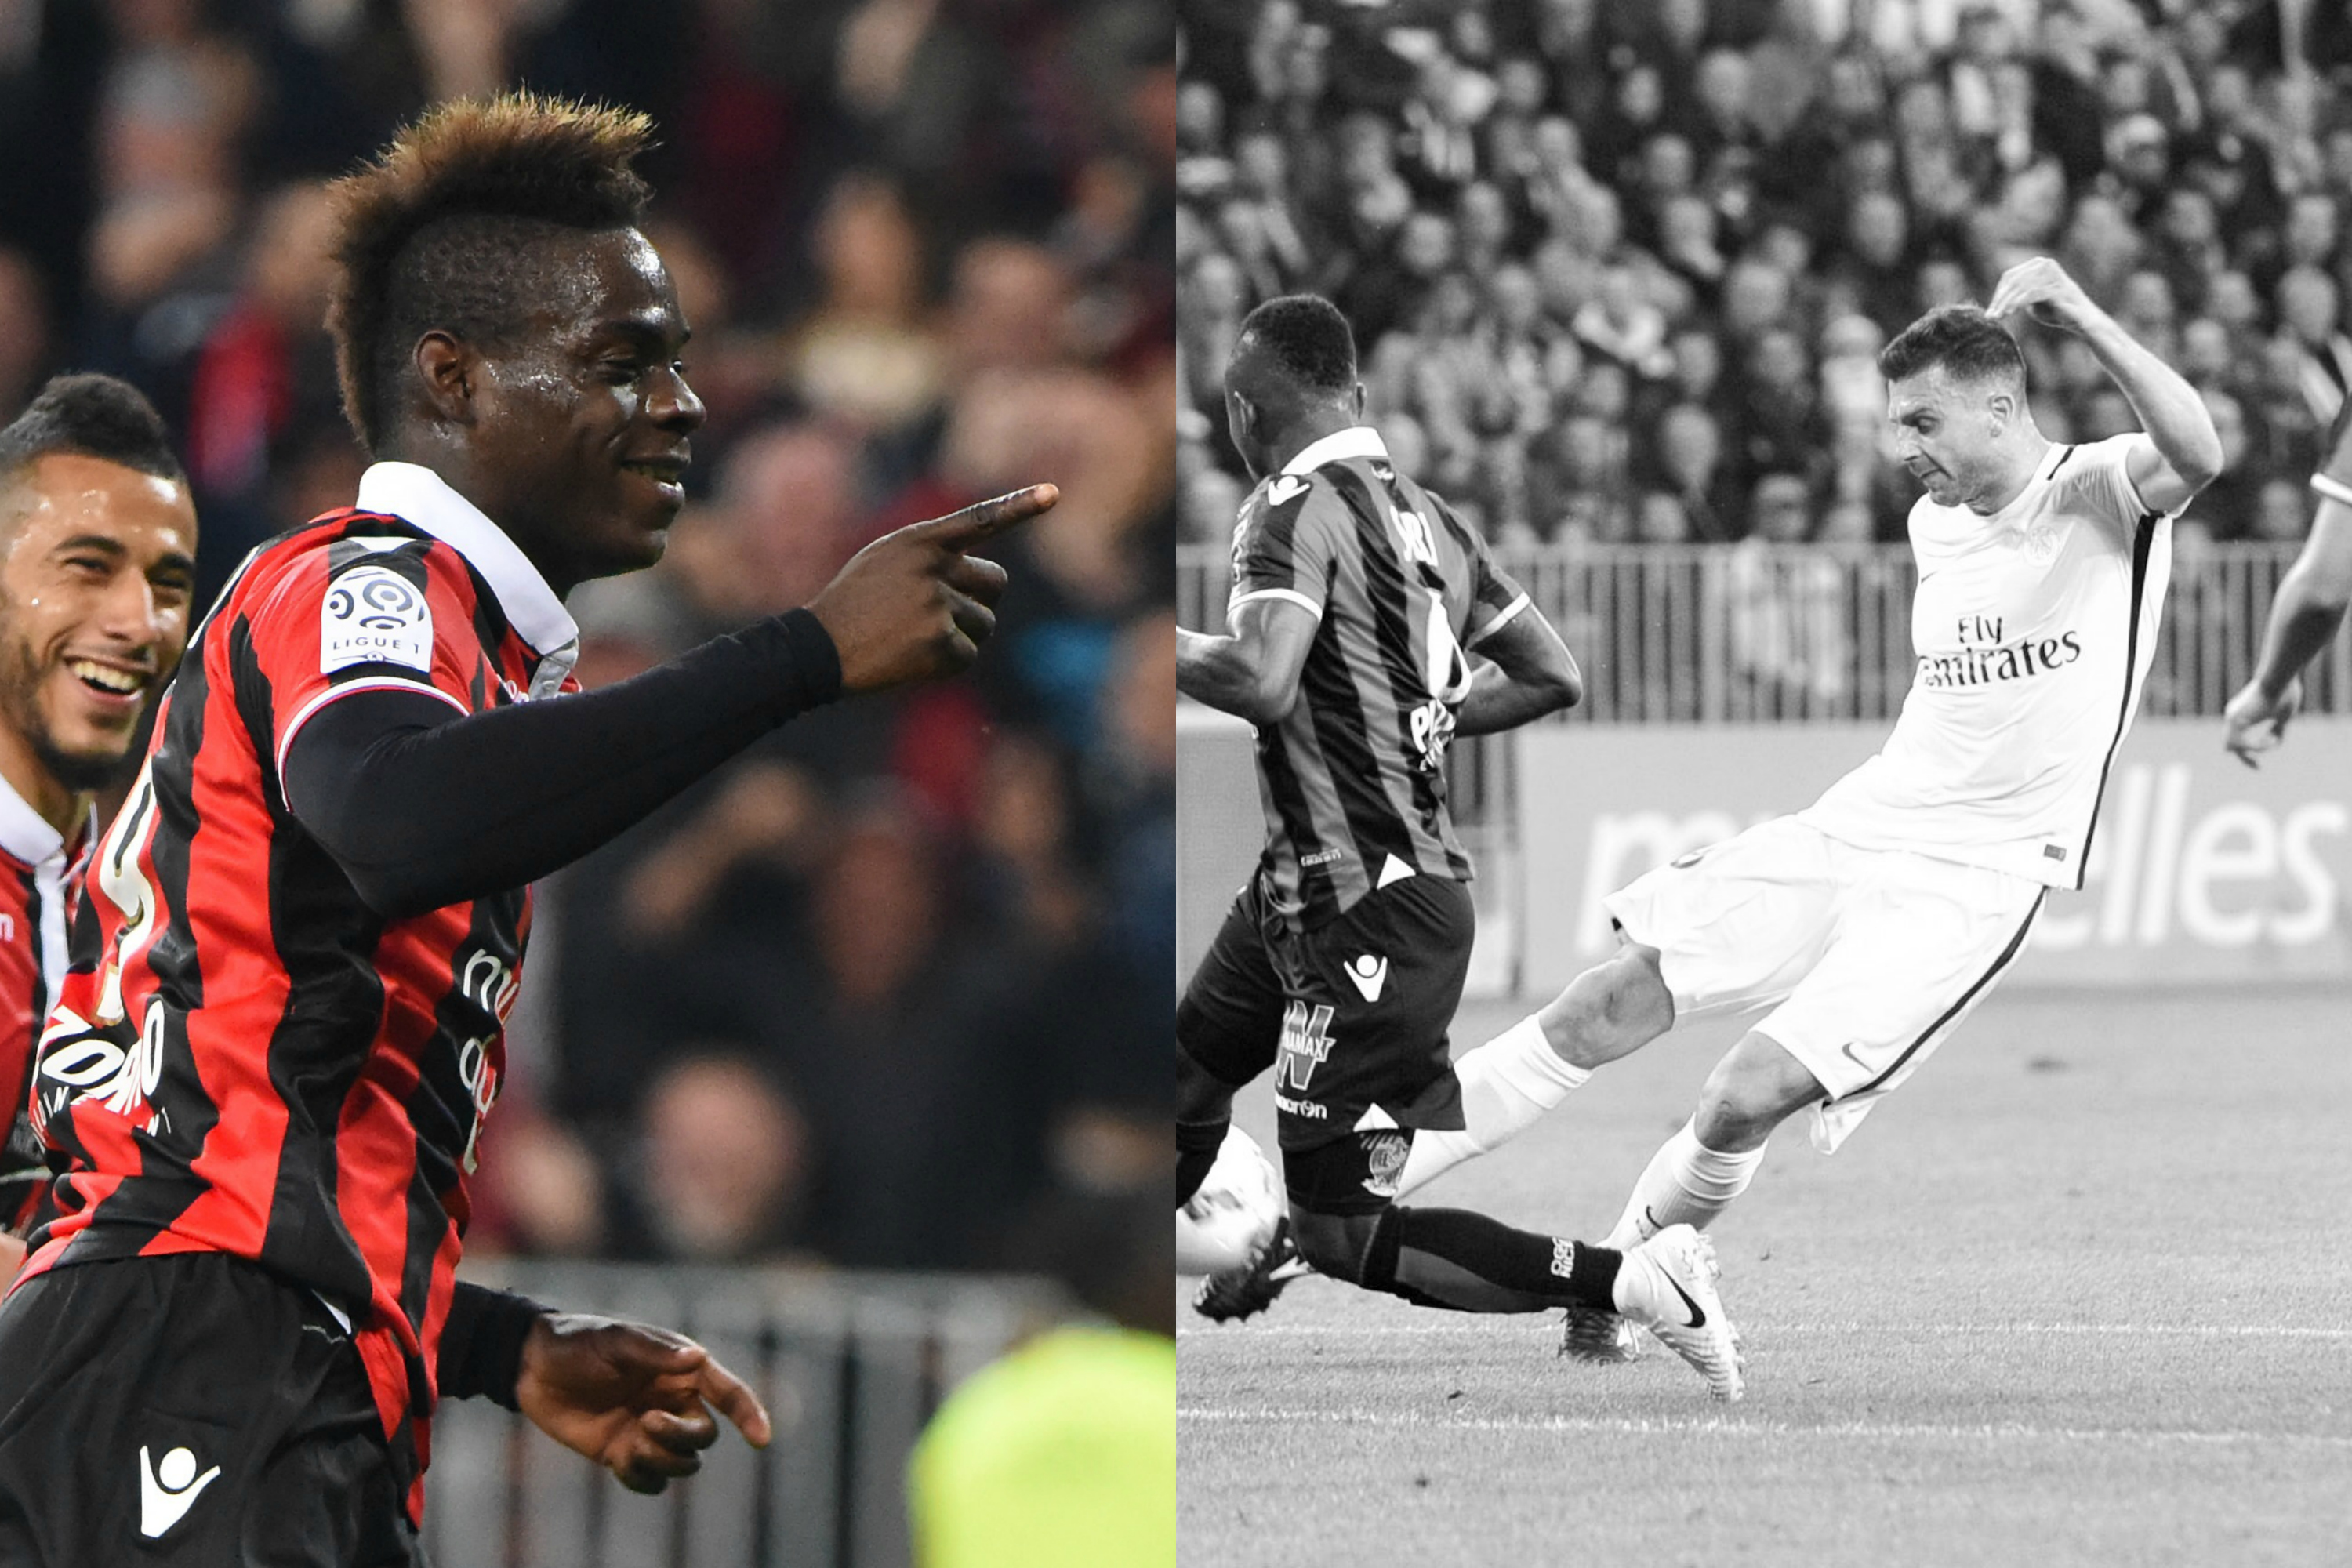 Football - Ligue 1 - Tops/Flops Nice-PSG : Balotelli en patron, Paris a pété les plombs